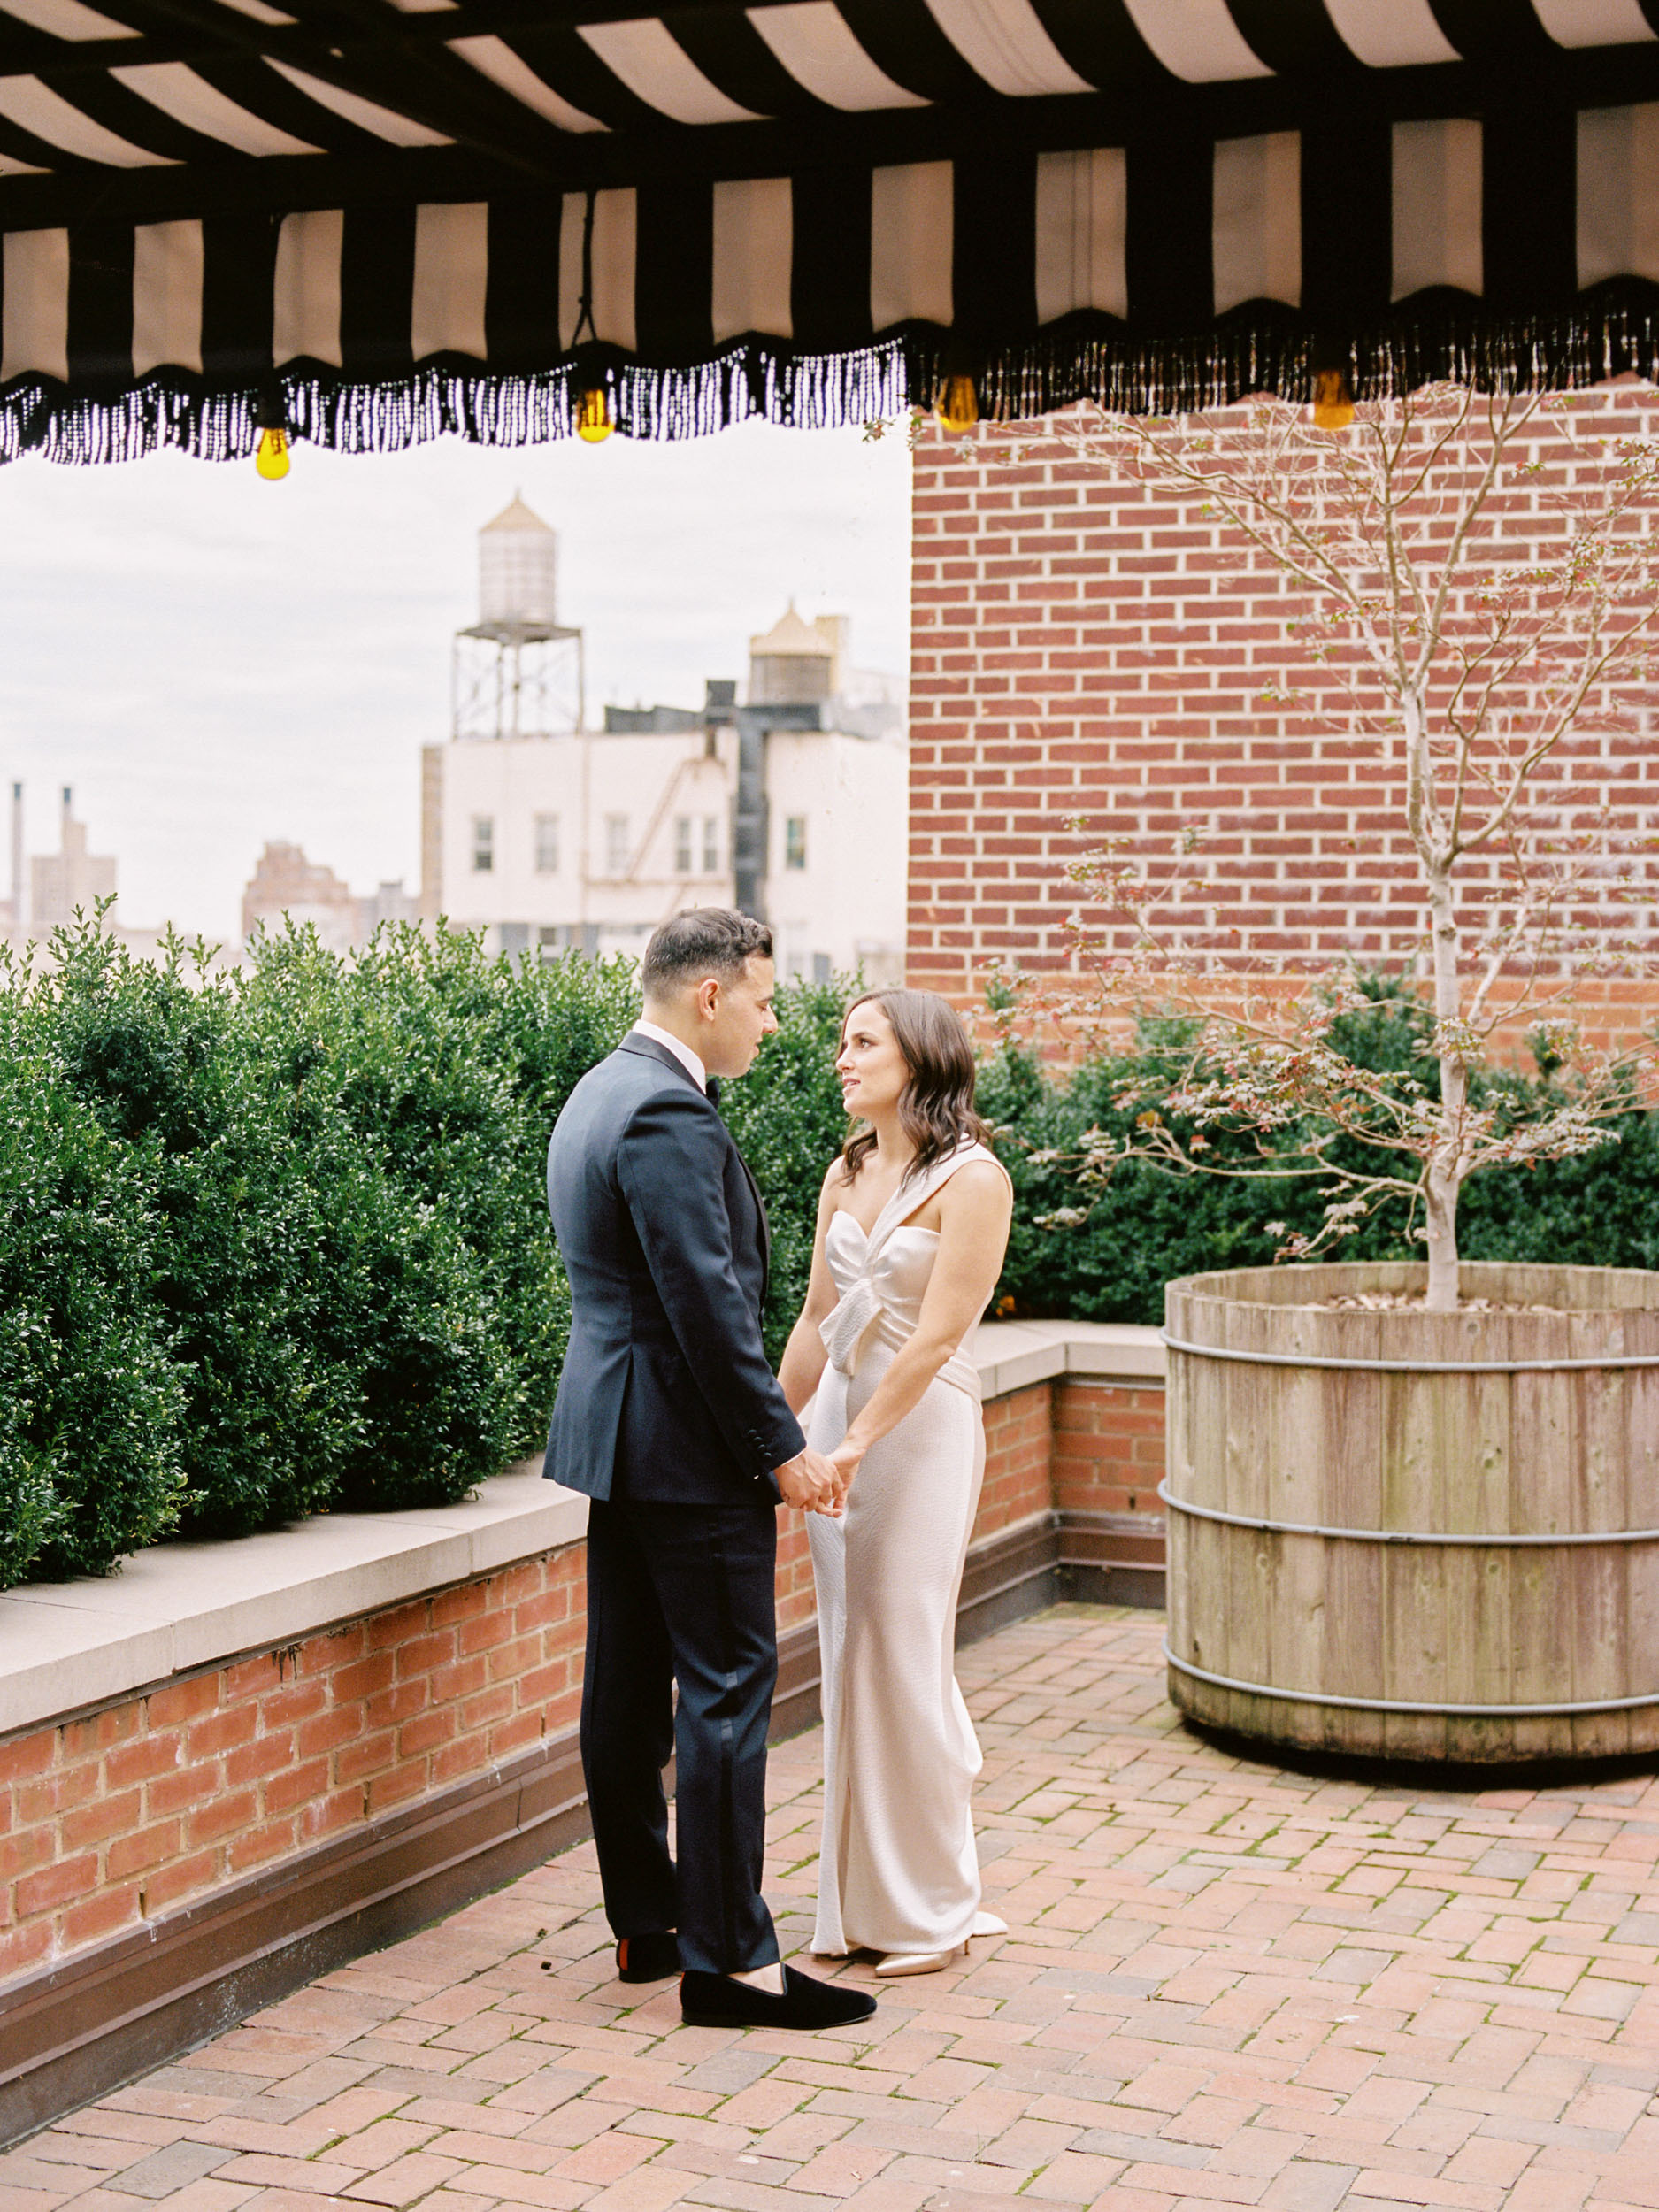 Bowery Hotel Wedding Photographer 4 - The Bowery Hotel